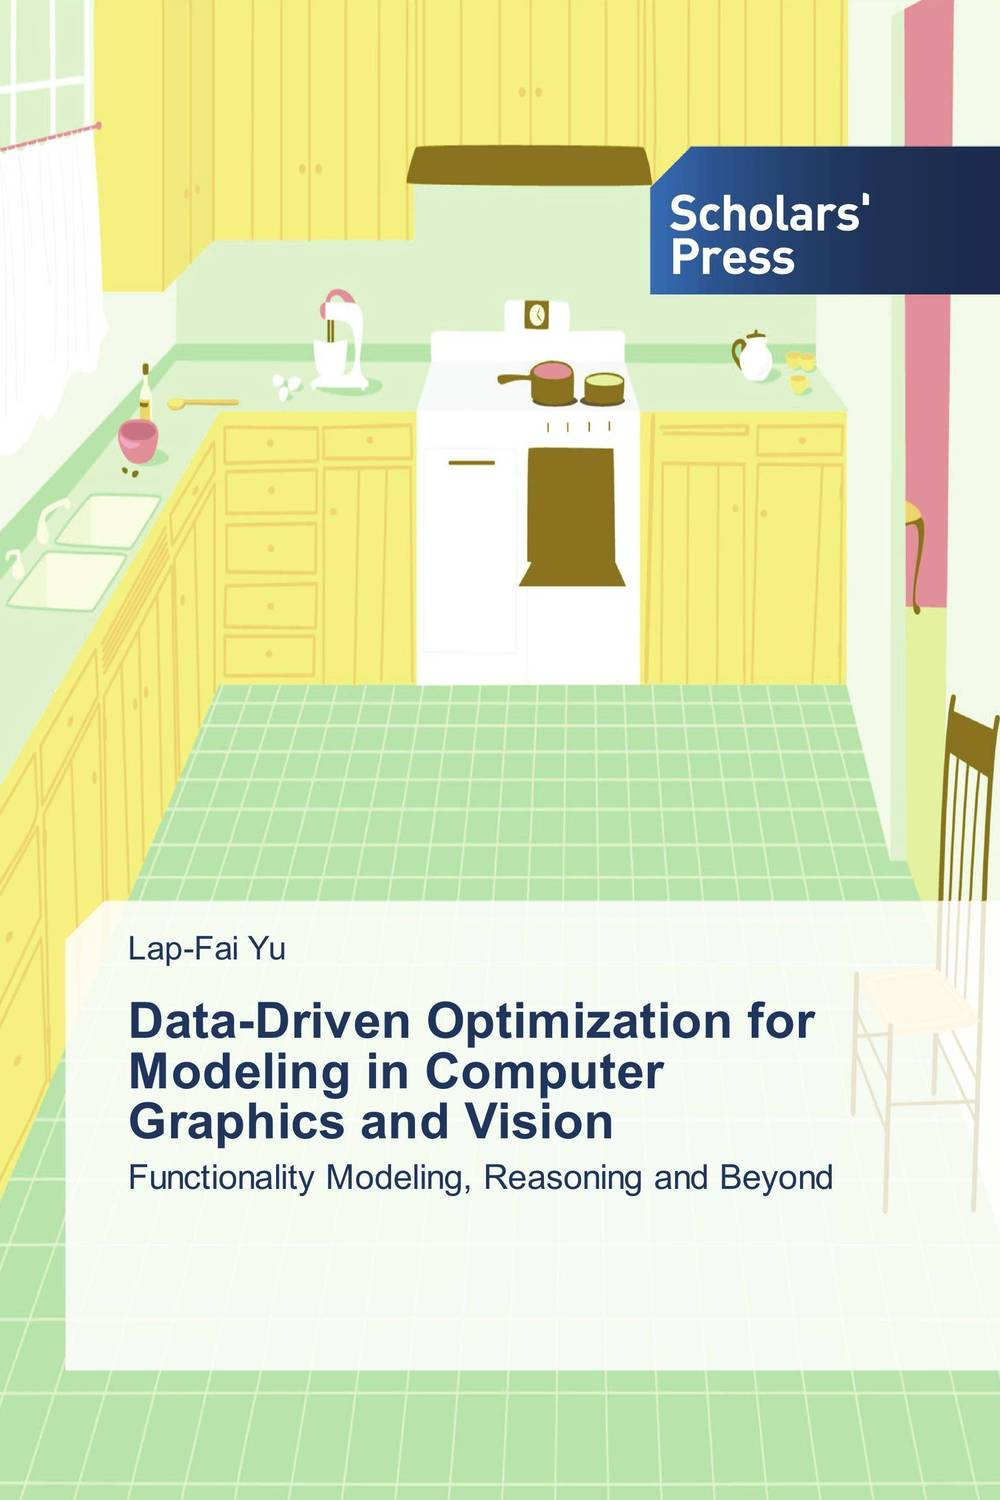 Data-Driven Optimization for Modeling in Computer Graphics and Vision driven to distraction